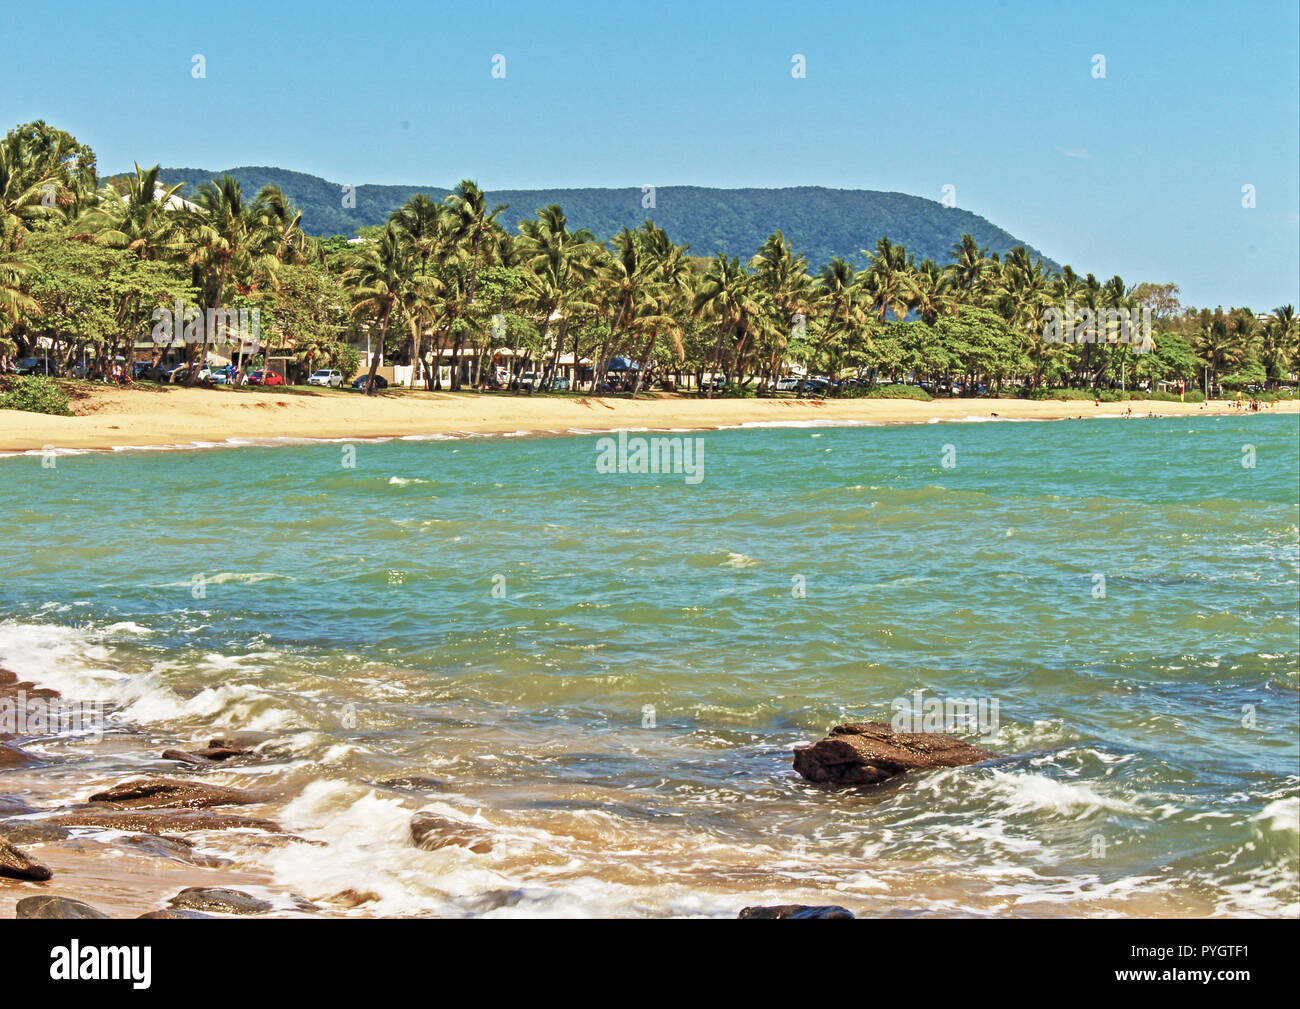 The beautiful palm tree lined beach and esplanade as seen from across the cove at Trinity Beach, Cairns QLD Australia - Stock Image